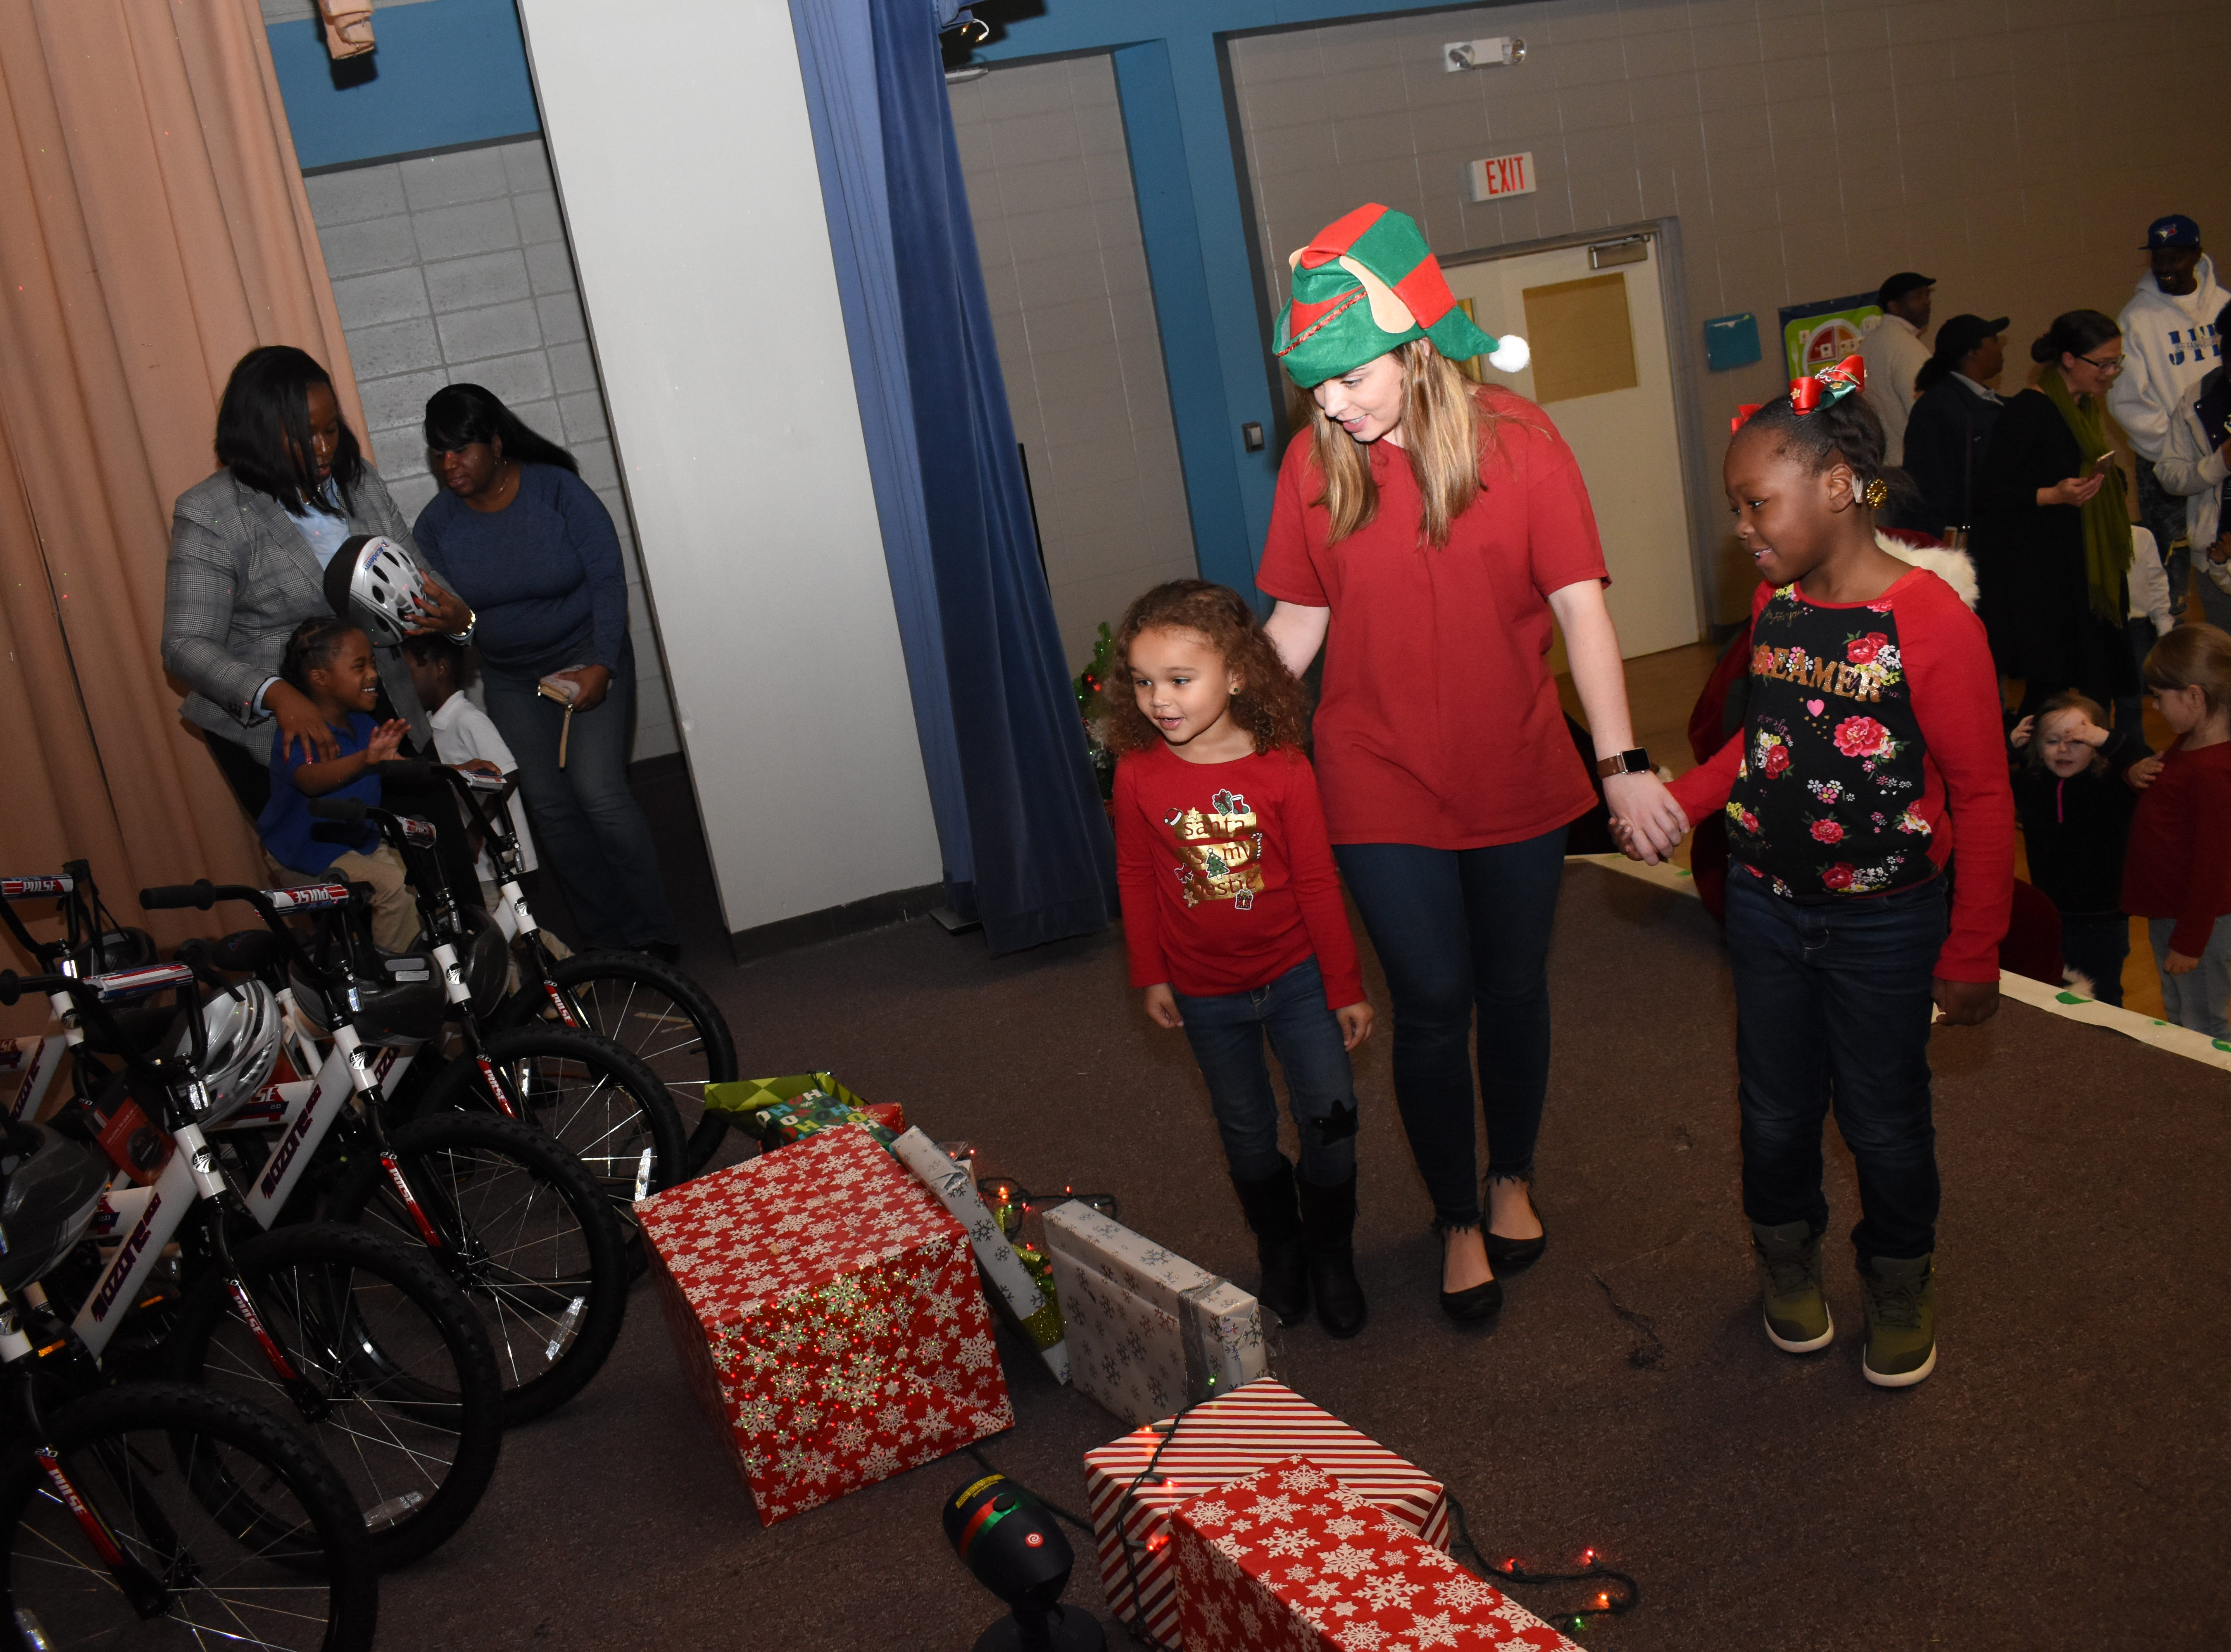 The Alexandria Academy Sports + Outdoors surprised 30 Mabel Brasher Montessori Elementary School students with bicycles and helmets Wednesday, Dec. 19, 2018. The Mabel Brasher students were among the 5,000 students in 16 states that were given bikes as part of Academy's holiday bike donation program. The bikes are a reward for children who have perfect attendance, academic performance, good behavior and may have a need for the gift.